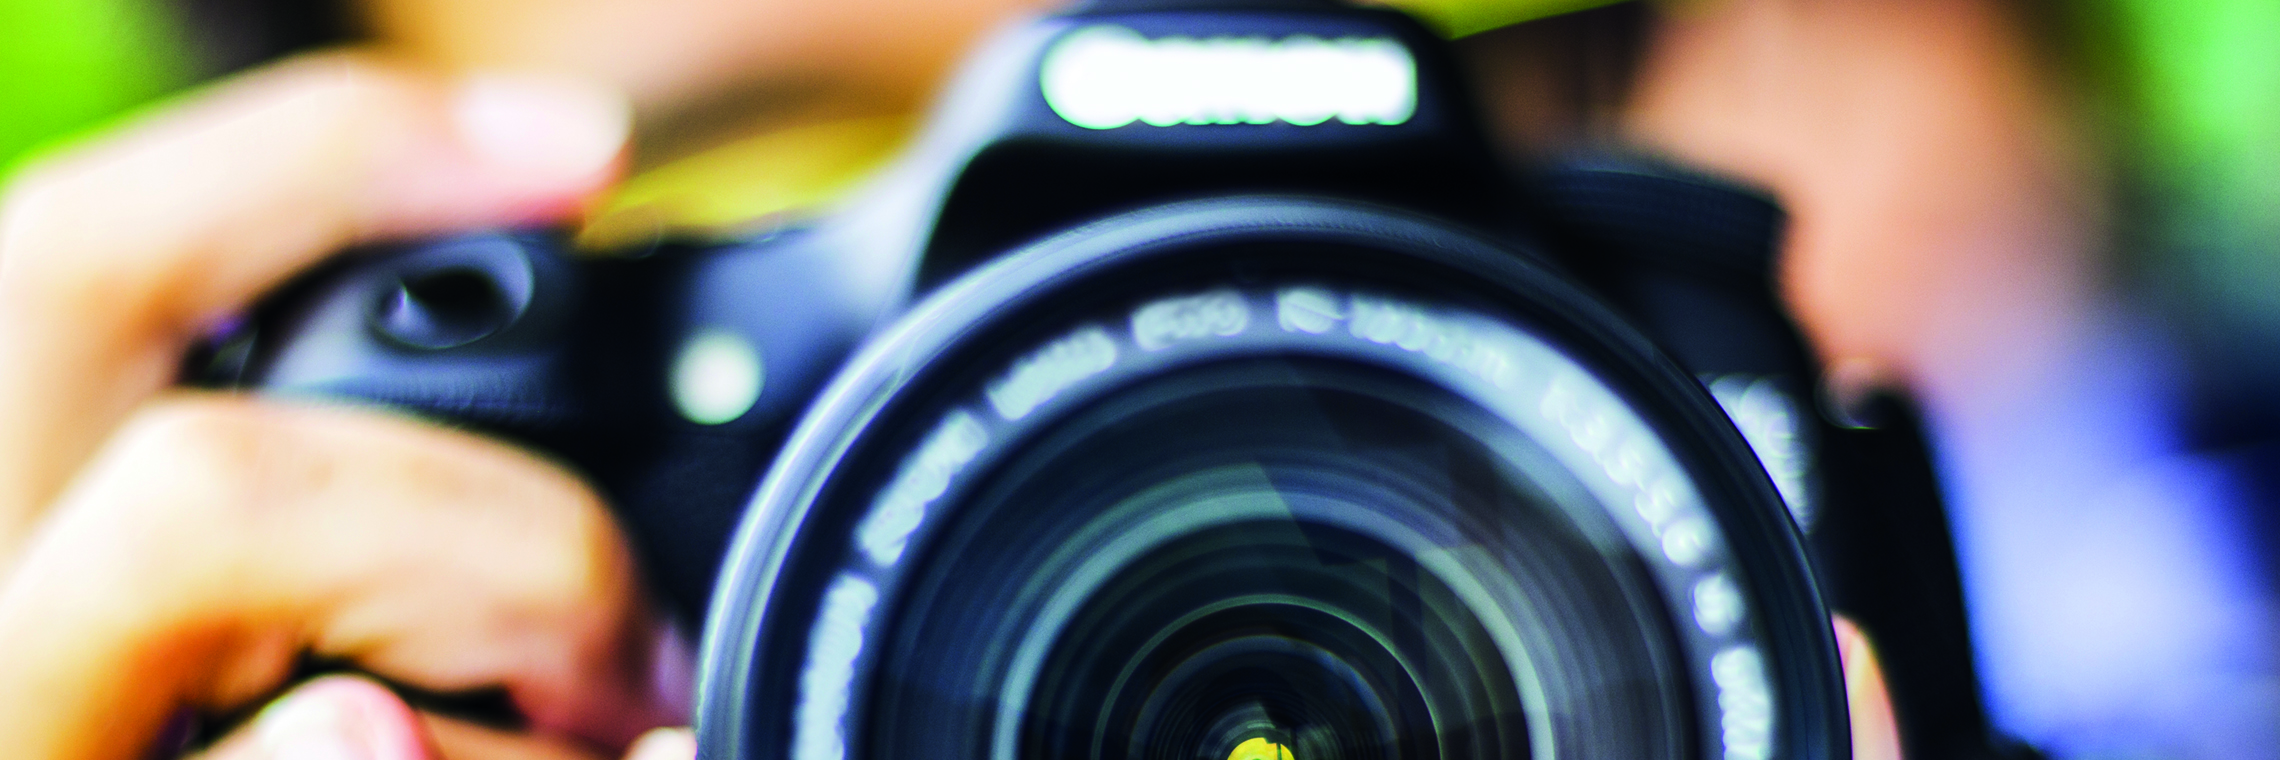 DSLR-Camera-Professional-Photography-Image-for-Jo-Broadbridge-Administrator-at-Harker-and-Bullman-Specialists-in-Dorset-Lettings